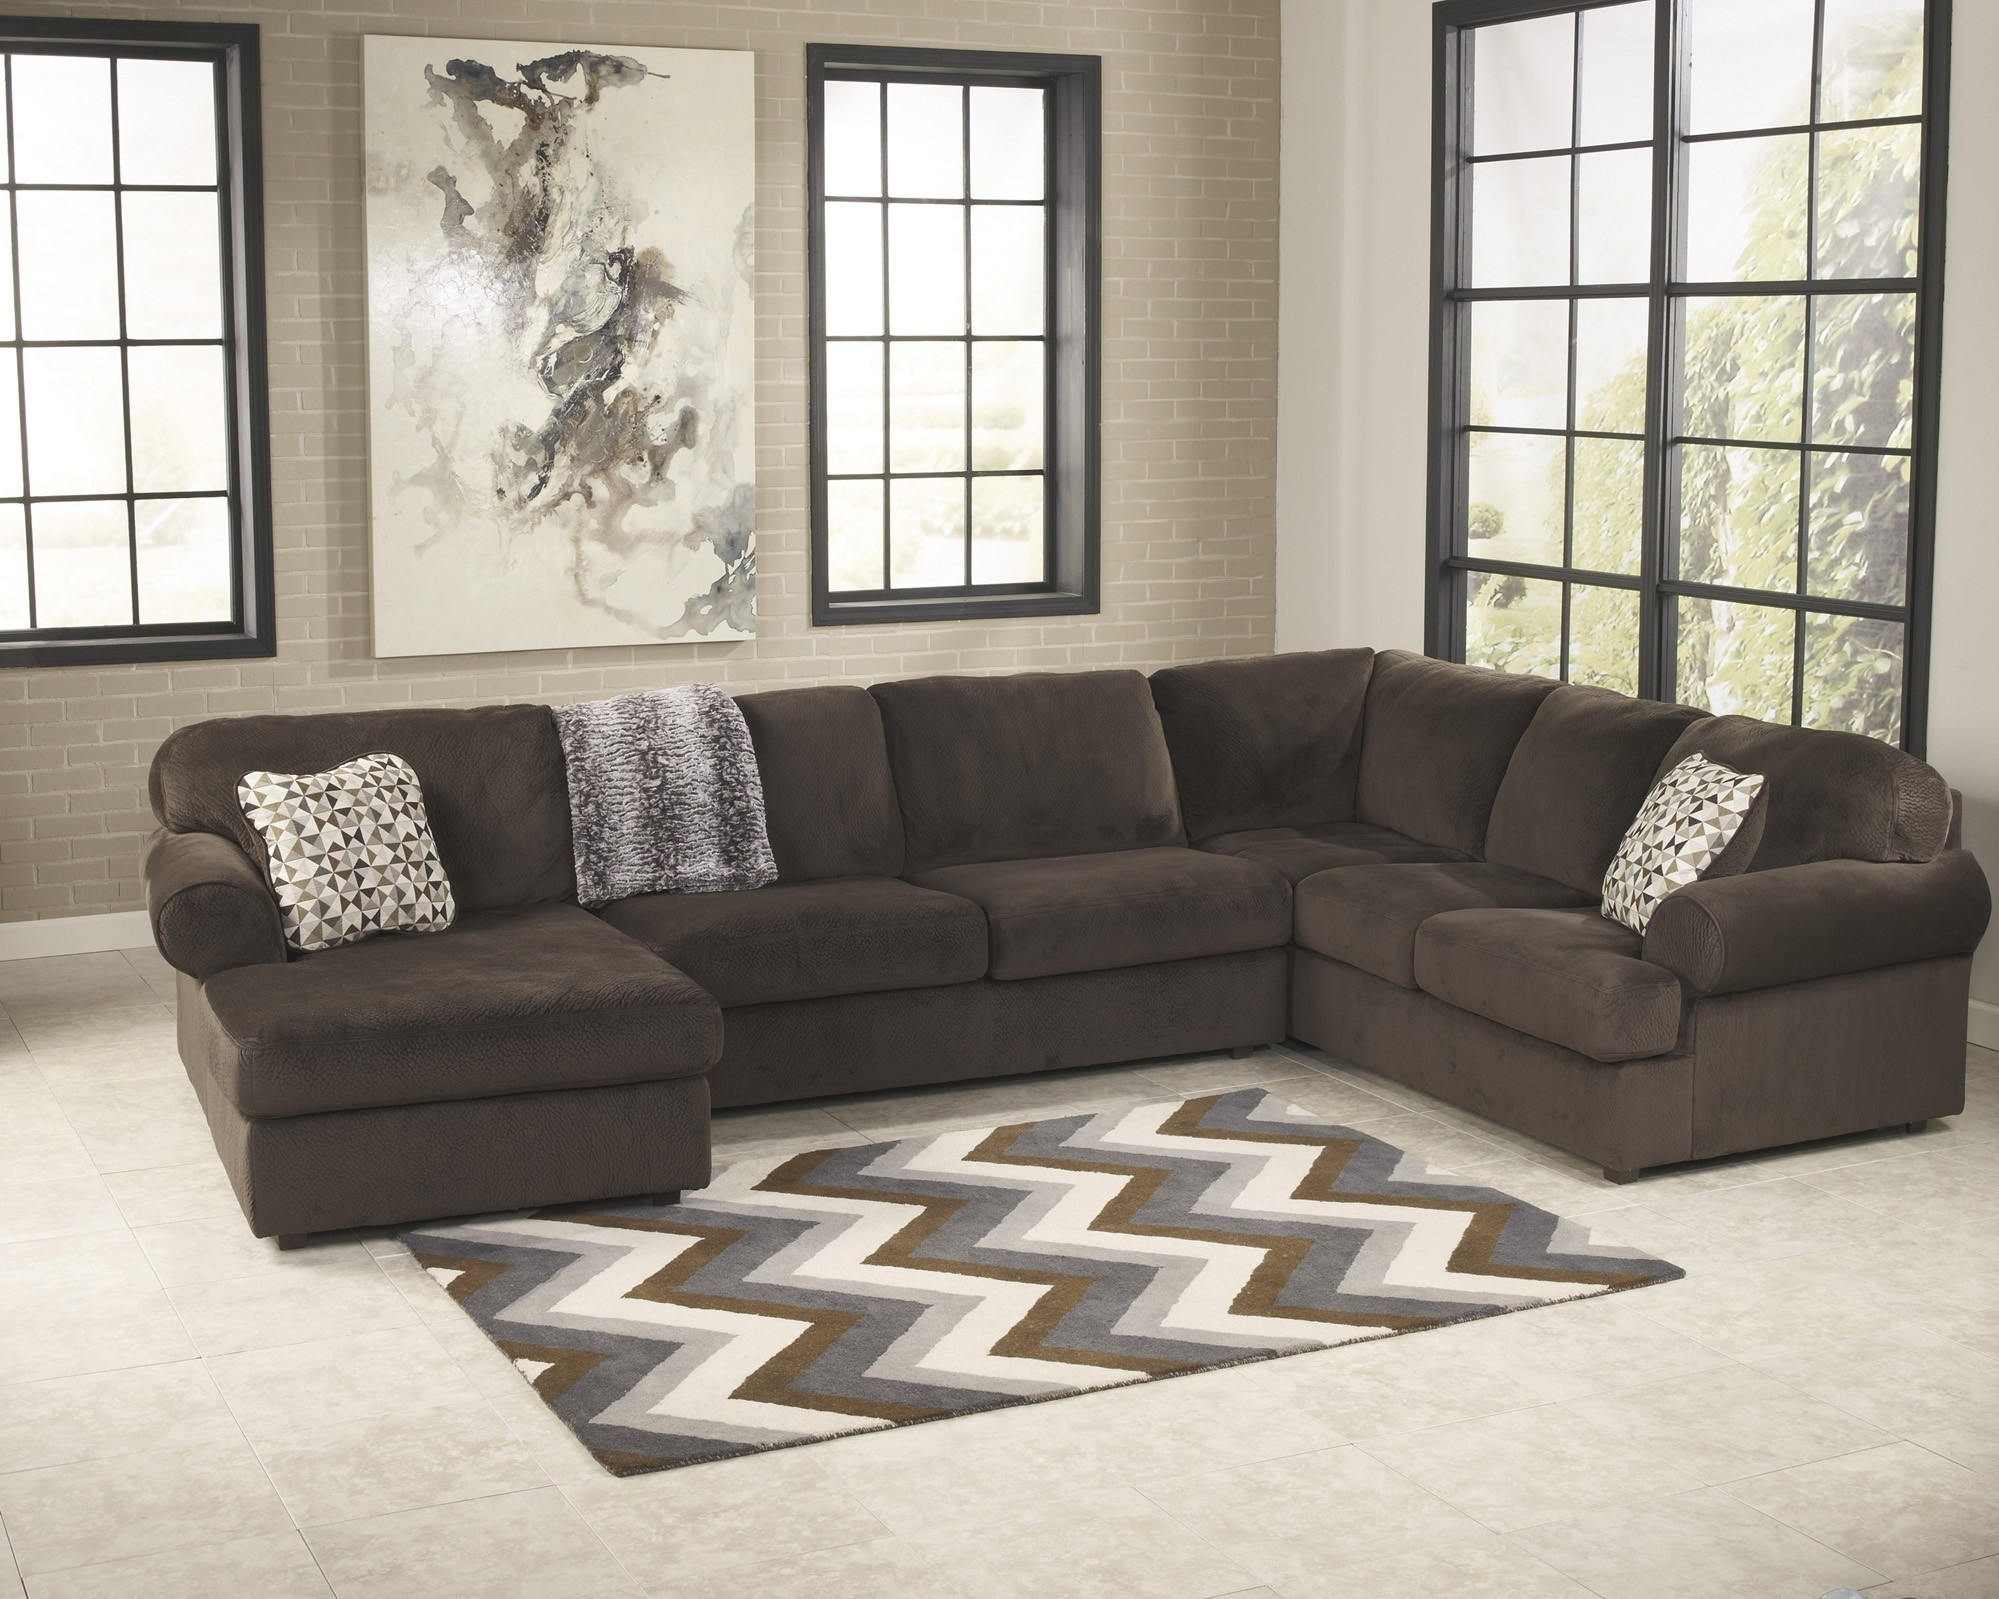 3 Piece Sectional Malbry Point W Laf Chaise Living Spaces 223533 0 Pertaining To Malbry Point 3 Piece Sectionals With Raf Chaise (View 11 of 30)